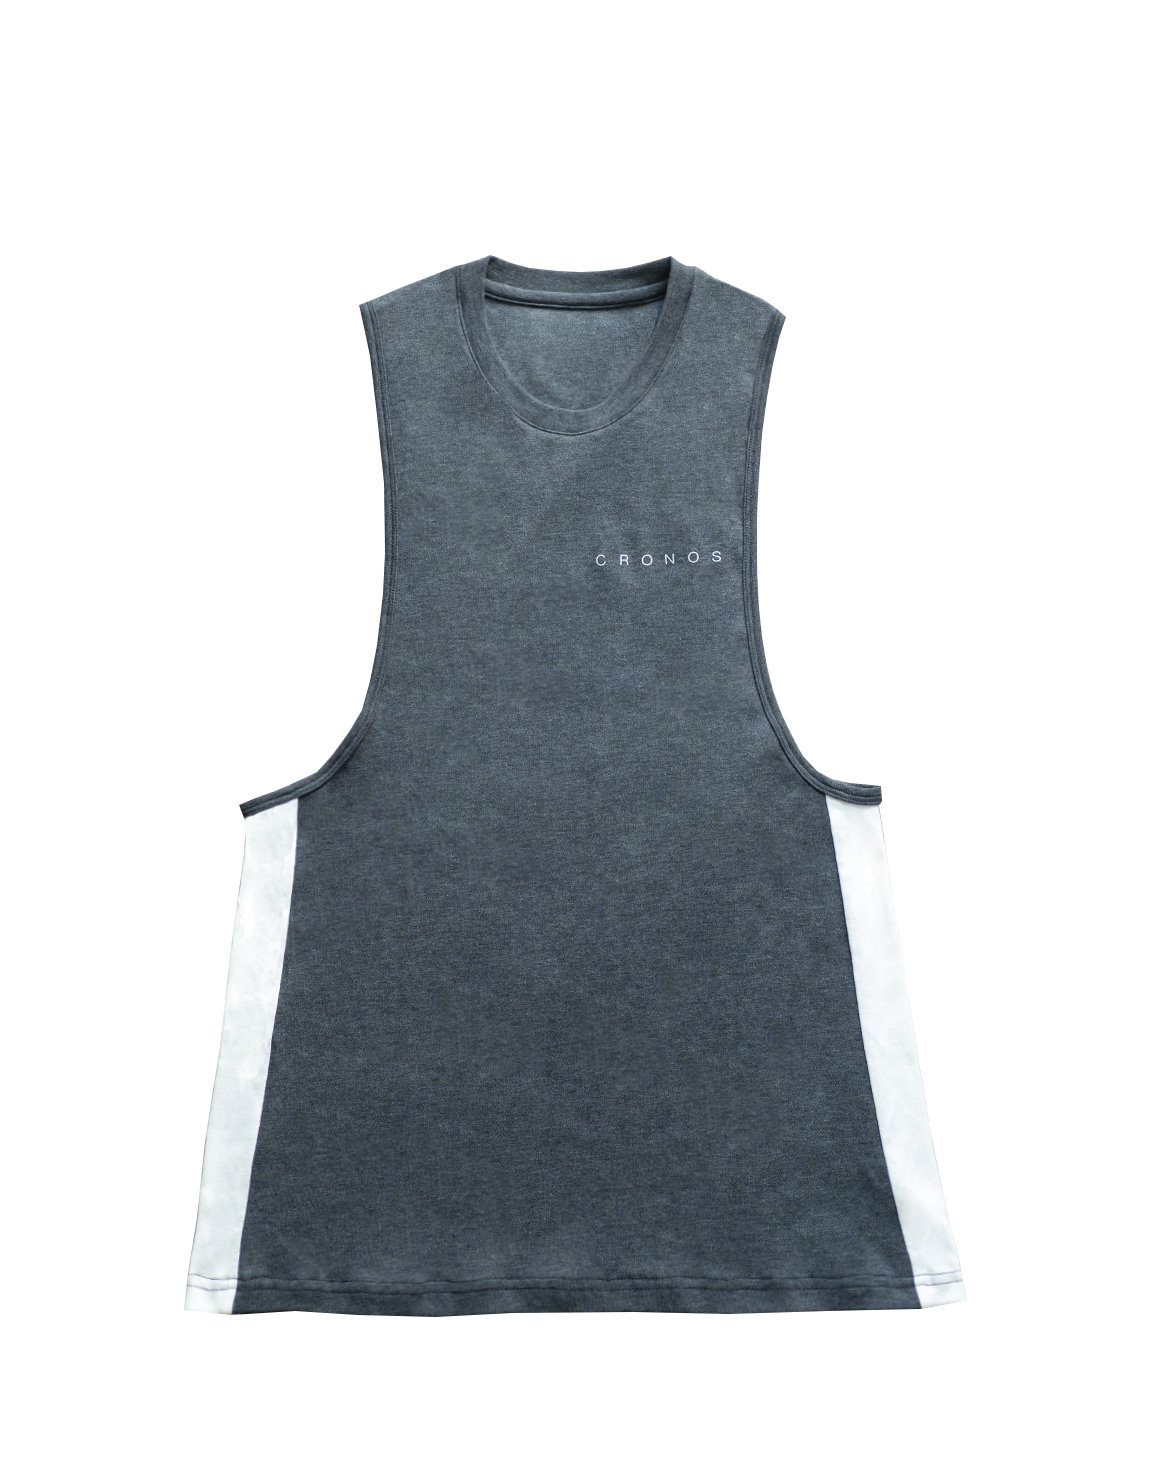 <img class='new_mark_img1' src='https://img.shop-pro.jp/img/new/icons1.gif' style='border:none;display:inline;margin:0px;padding:0px;width:auto;' />FRONT FONT LOGO TANK TOP【C.GRAY】